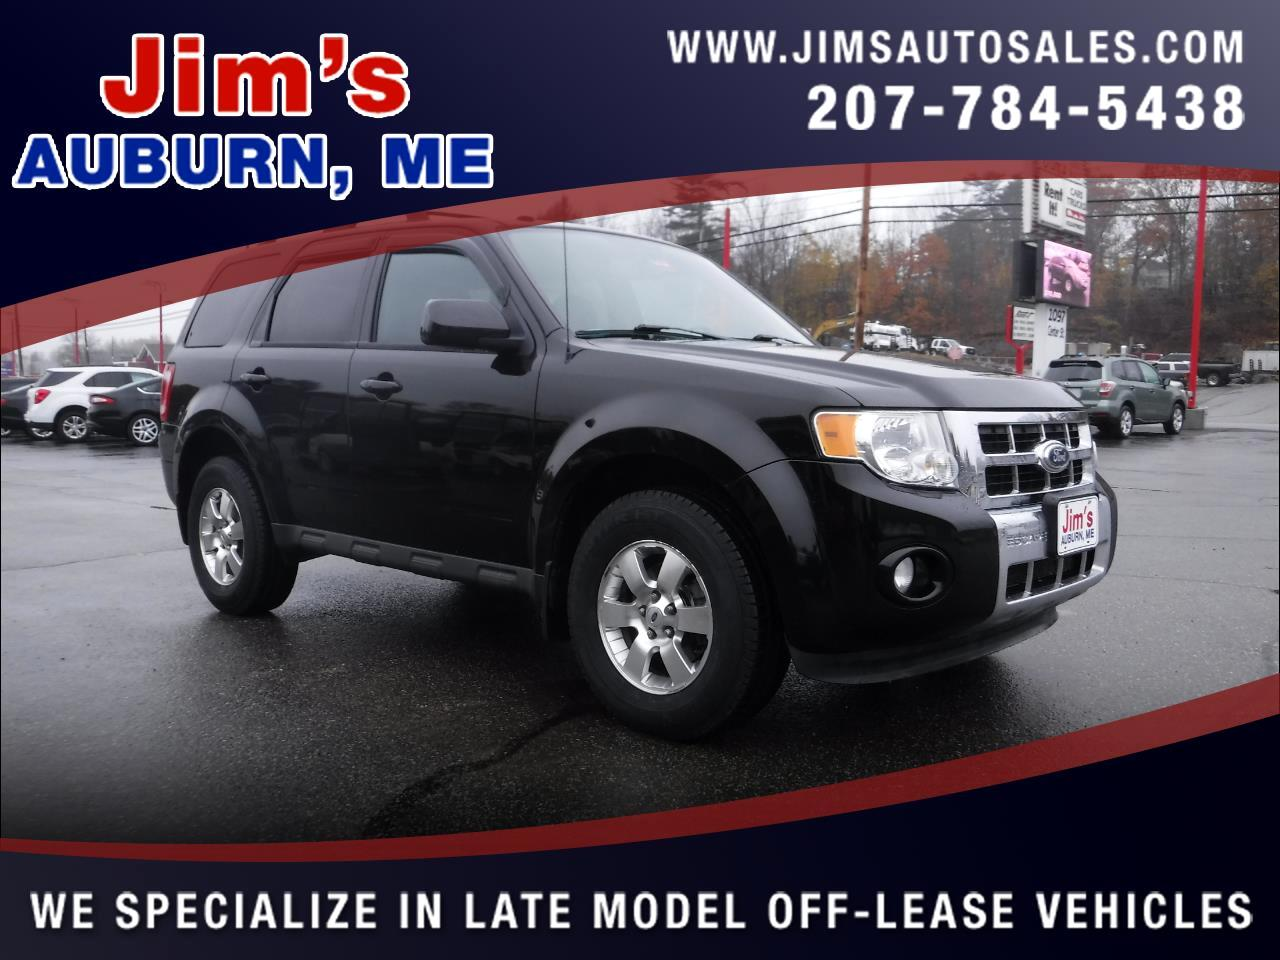 2011 Ford Escape 4WD 4dr Limited